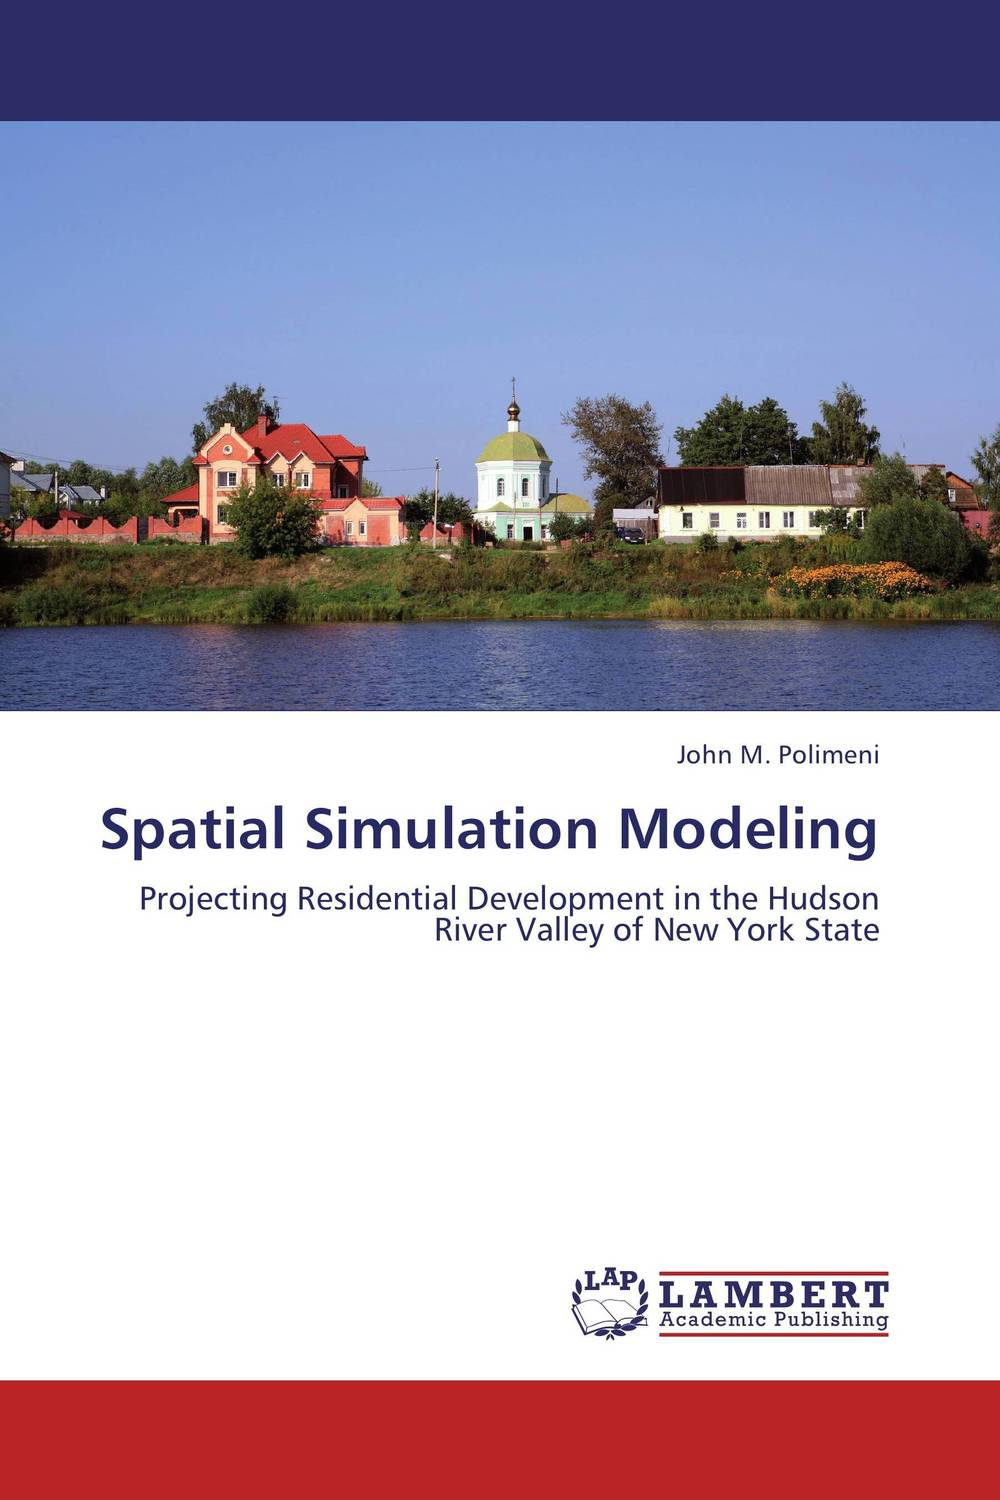 Spatial Simulation Modeling microsimulation modeling of ict policies at firm level